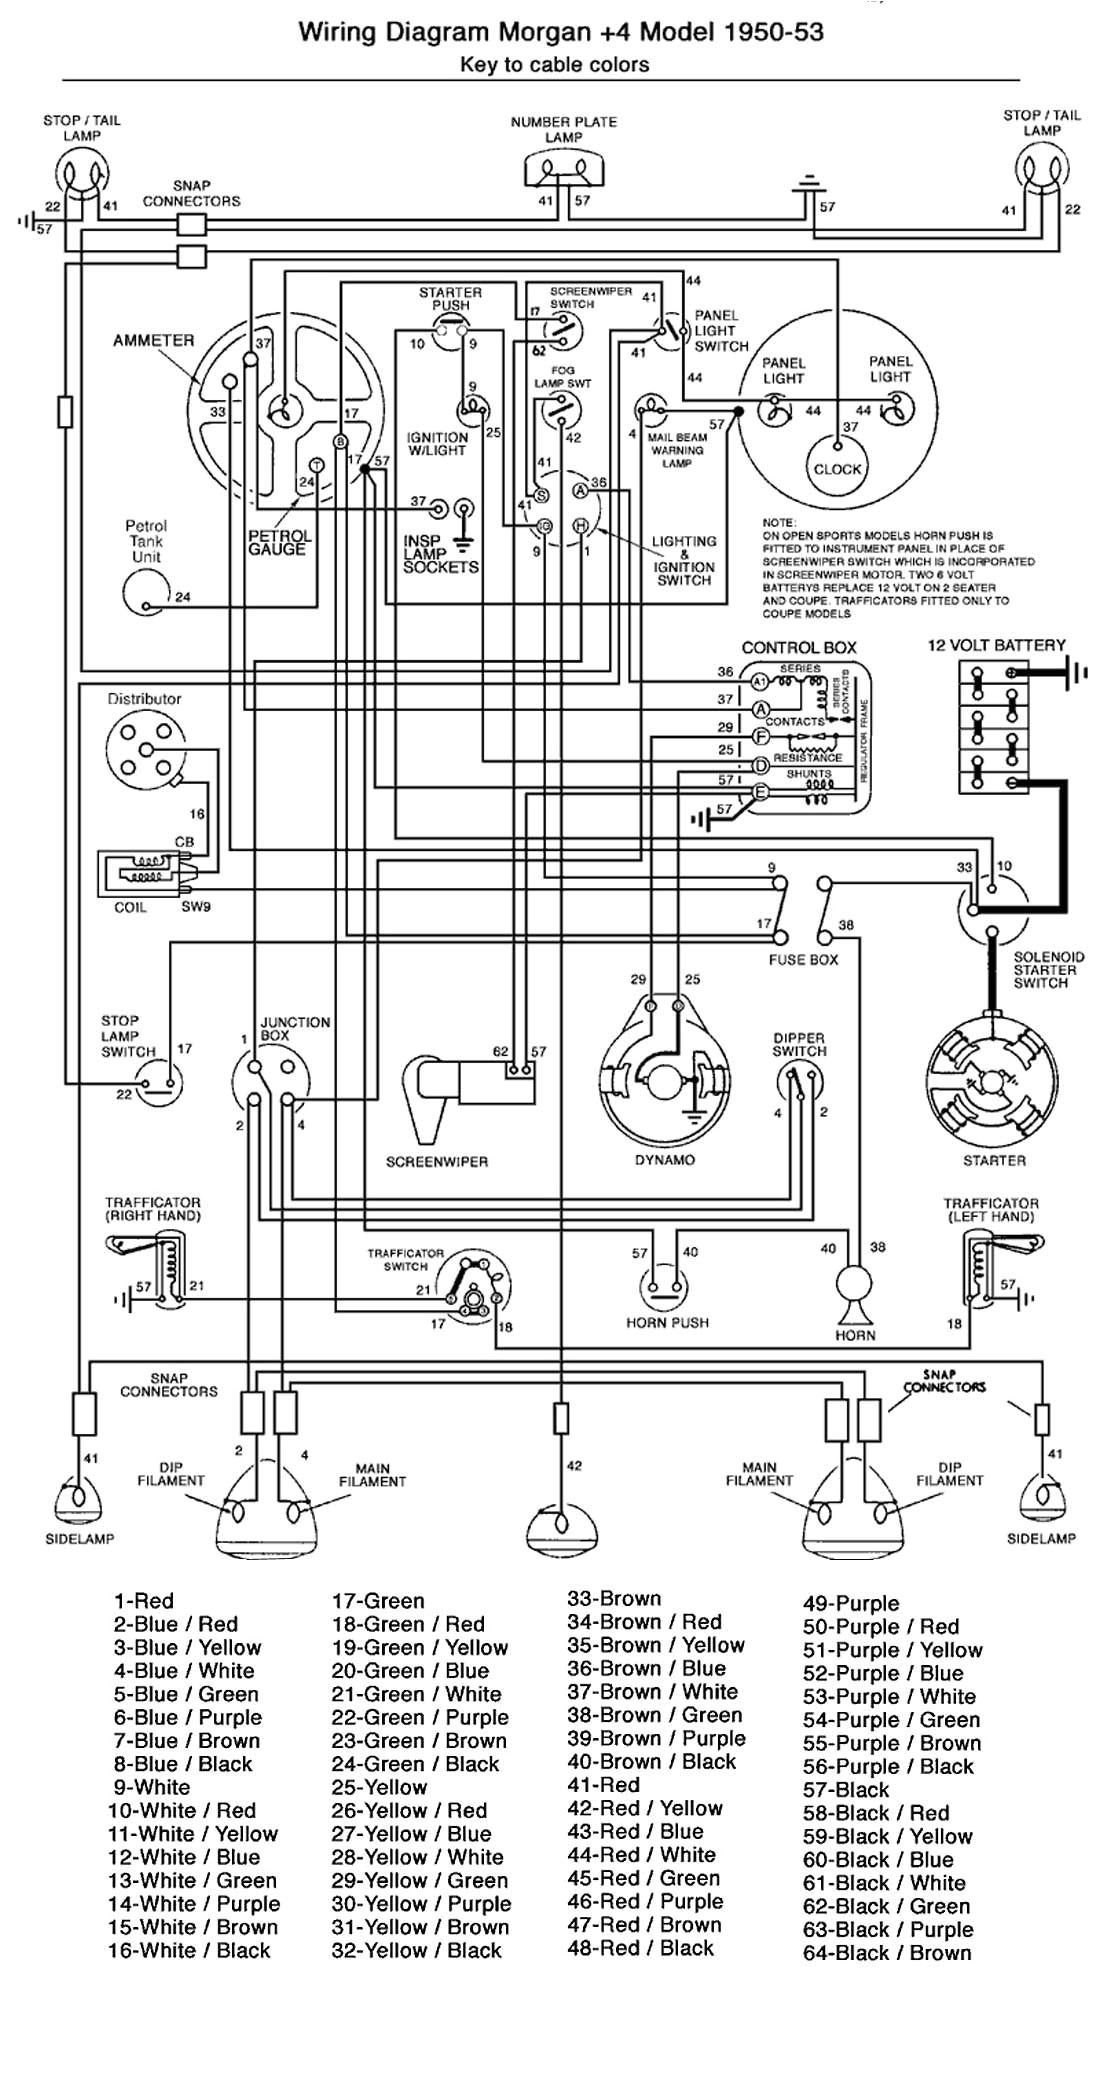 morgan spas wiring diagram circuit diagram wiring diagram morgan spa diagram